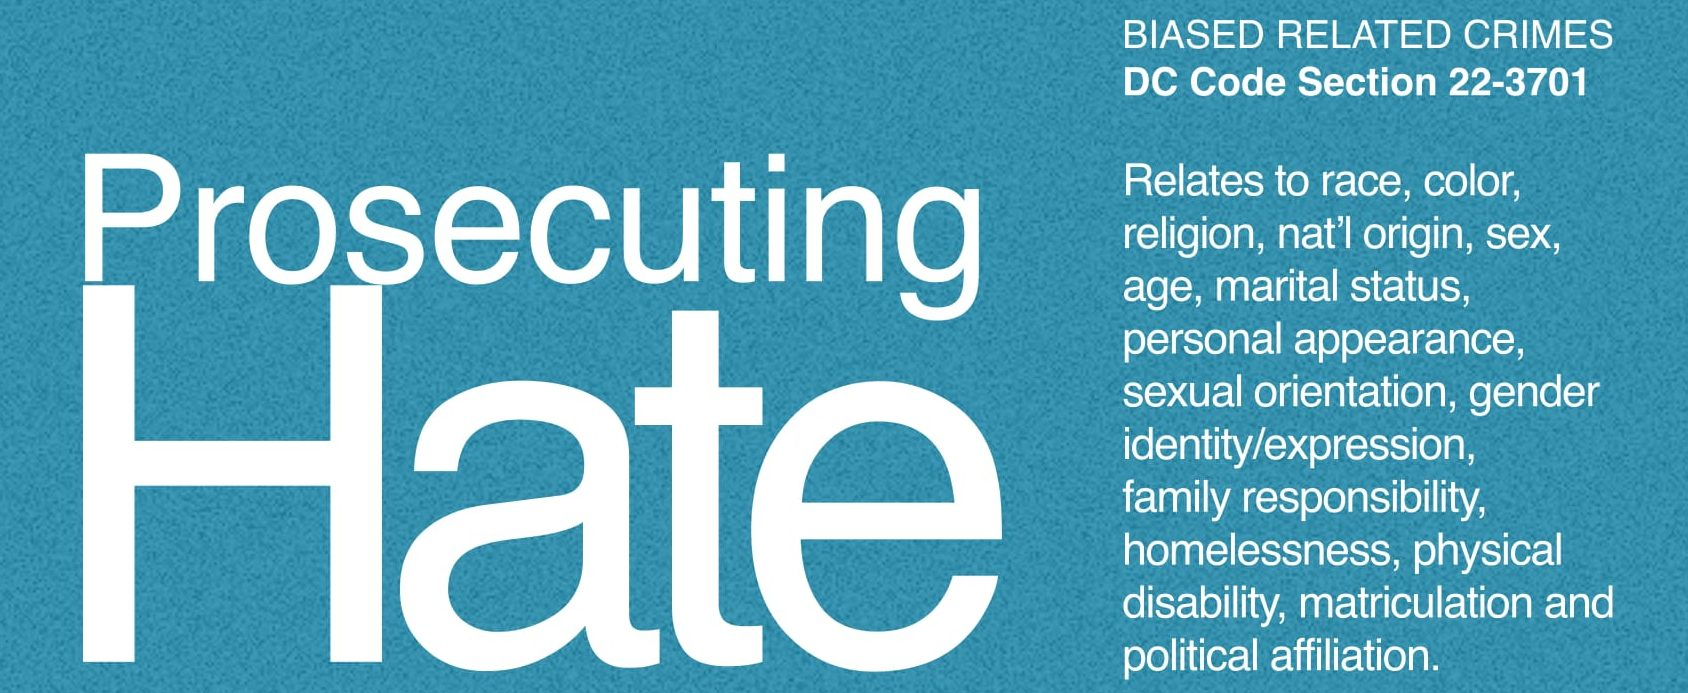 Prosecuting Hate - Looking at Hate/Bias Crimes in DC